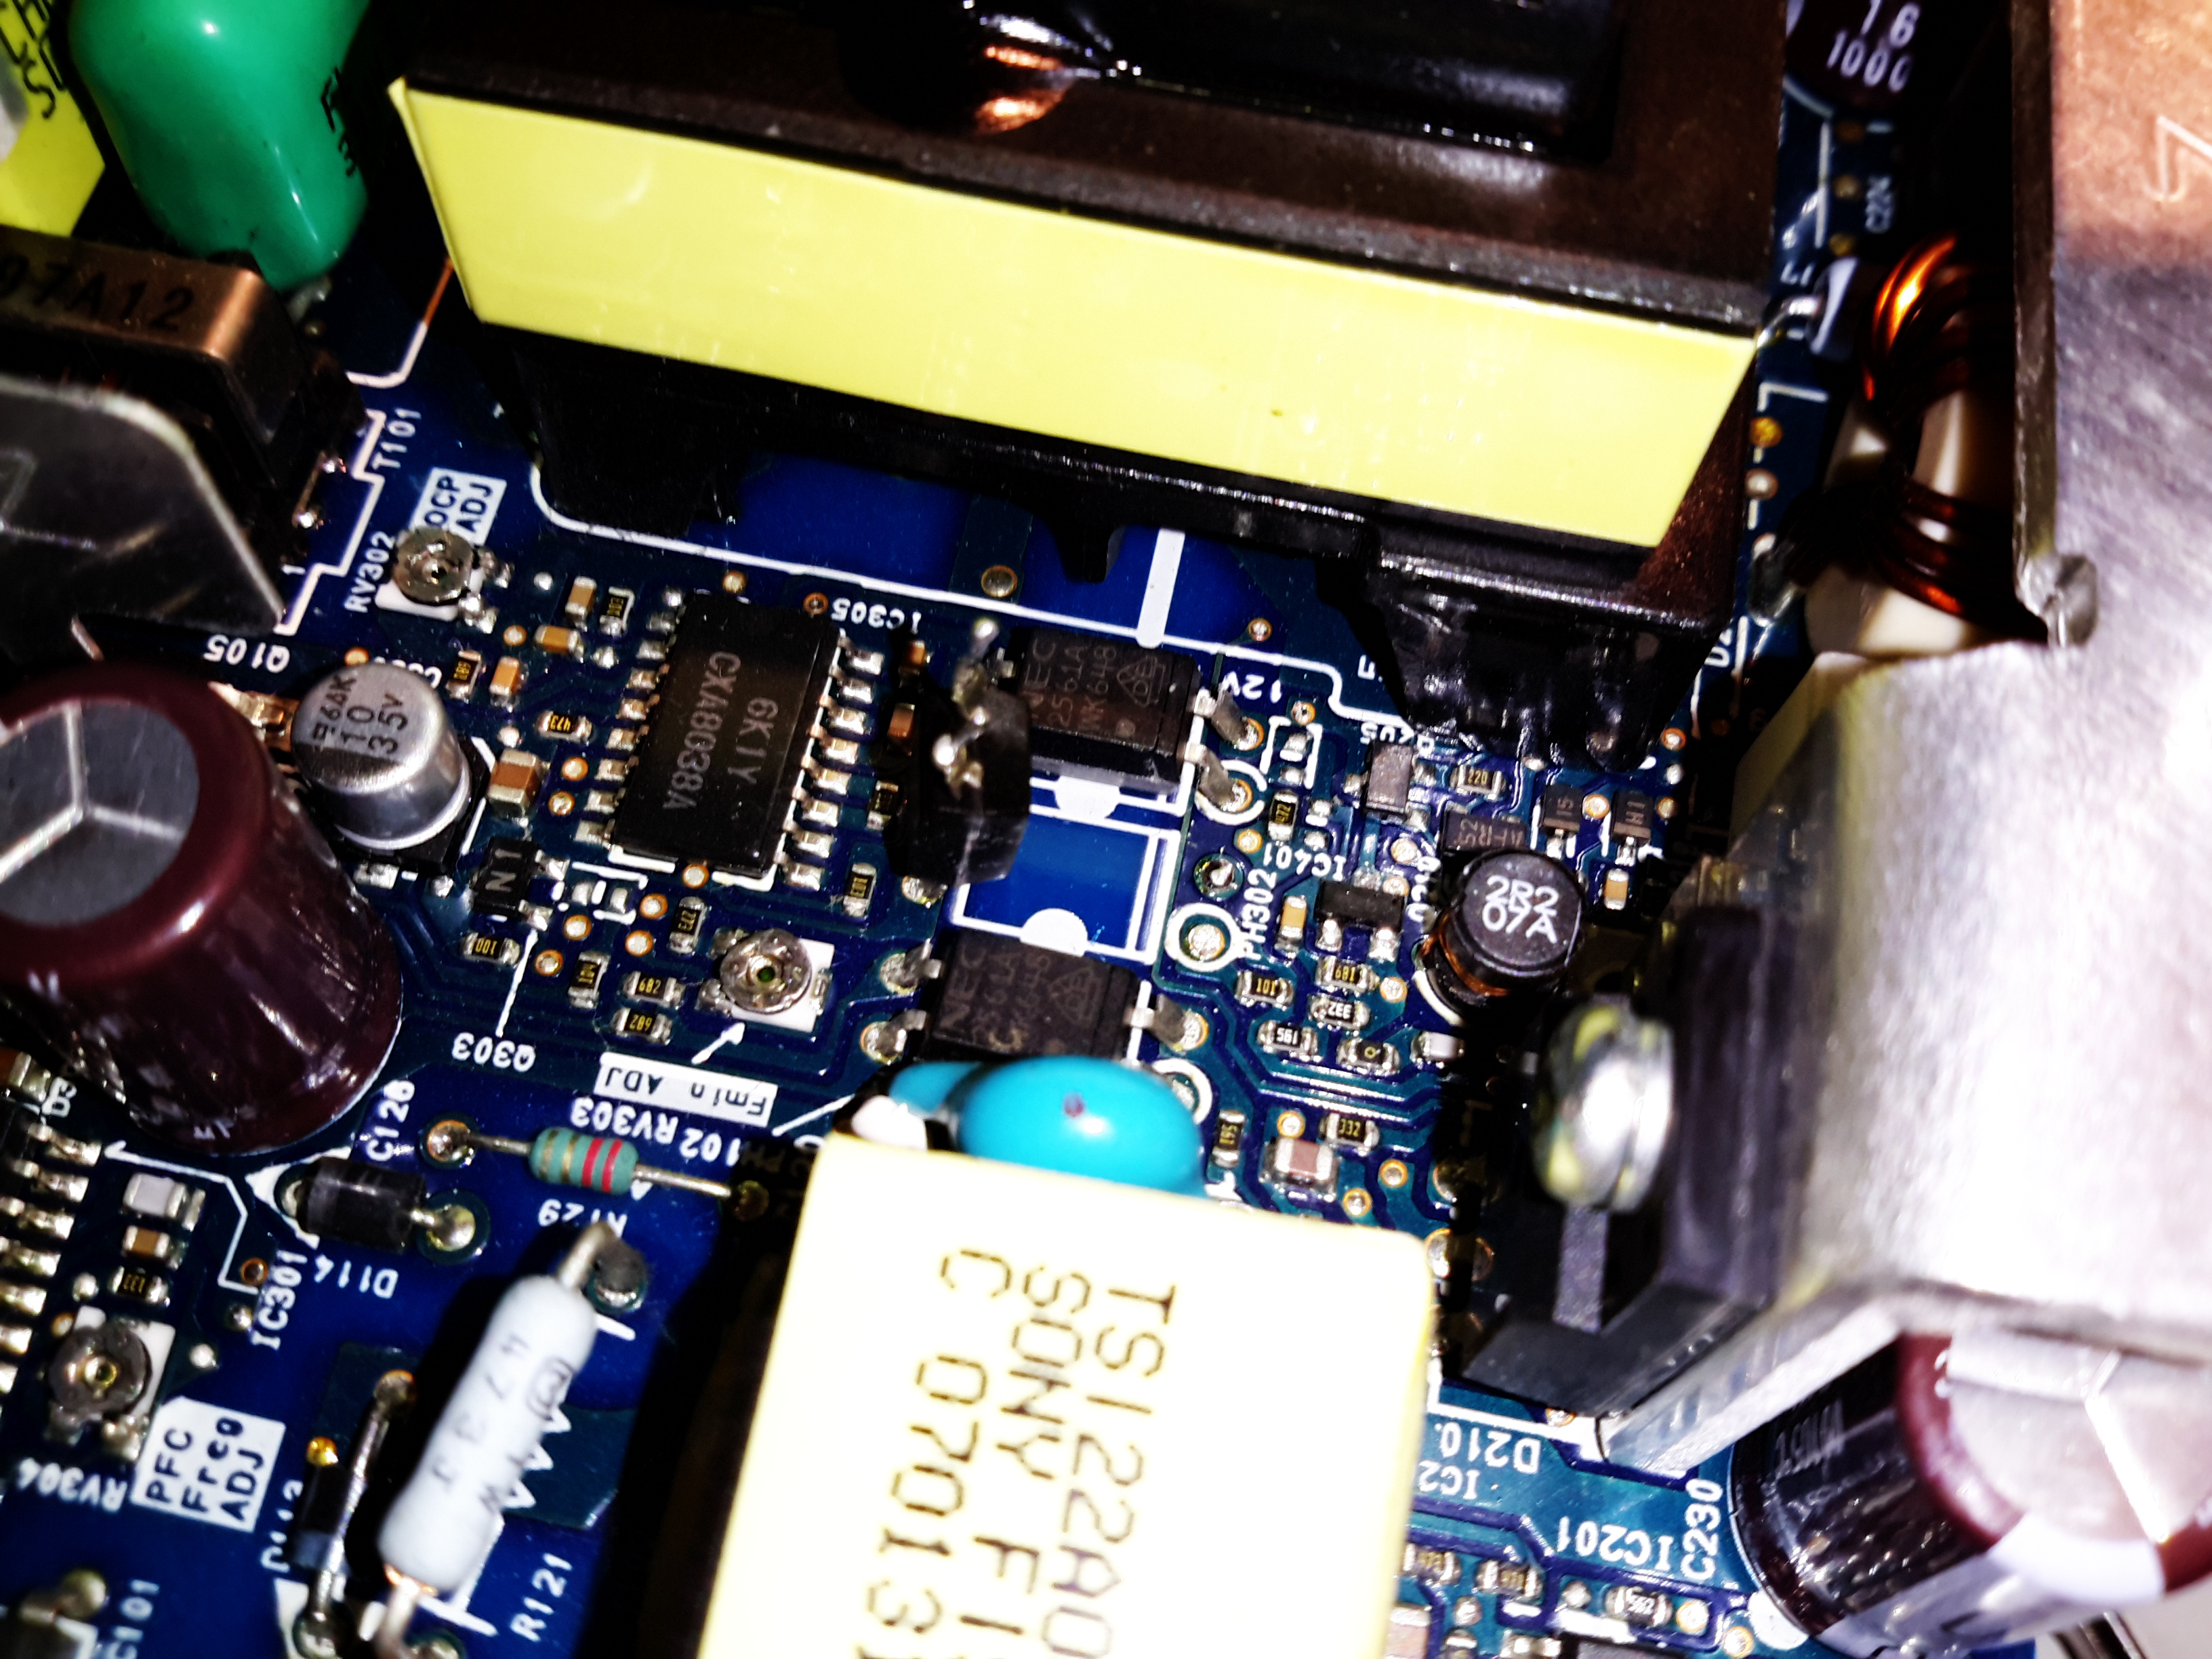 Sony Ps3 Aps 227 Power Supply Voltage Mod Experimental Engineering Ovp Wiring Diagram Optocoupler Disconnected